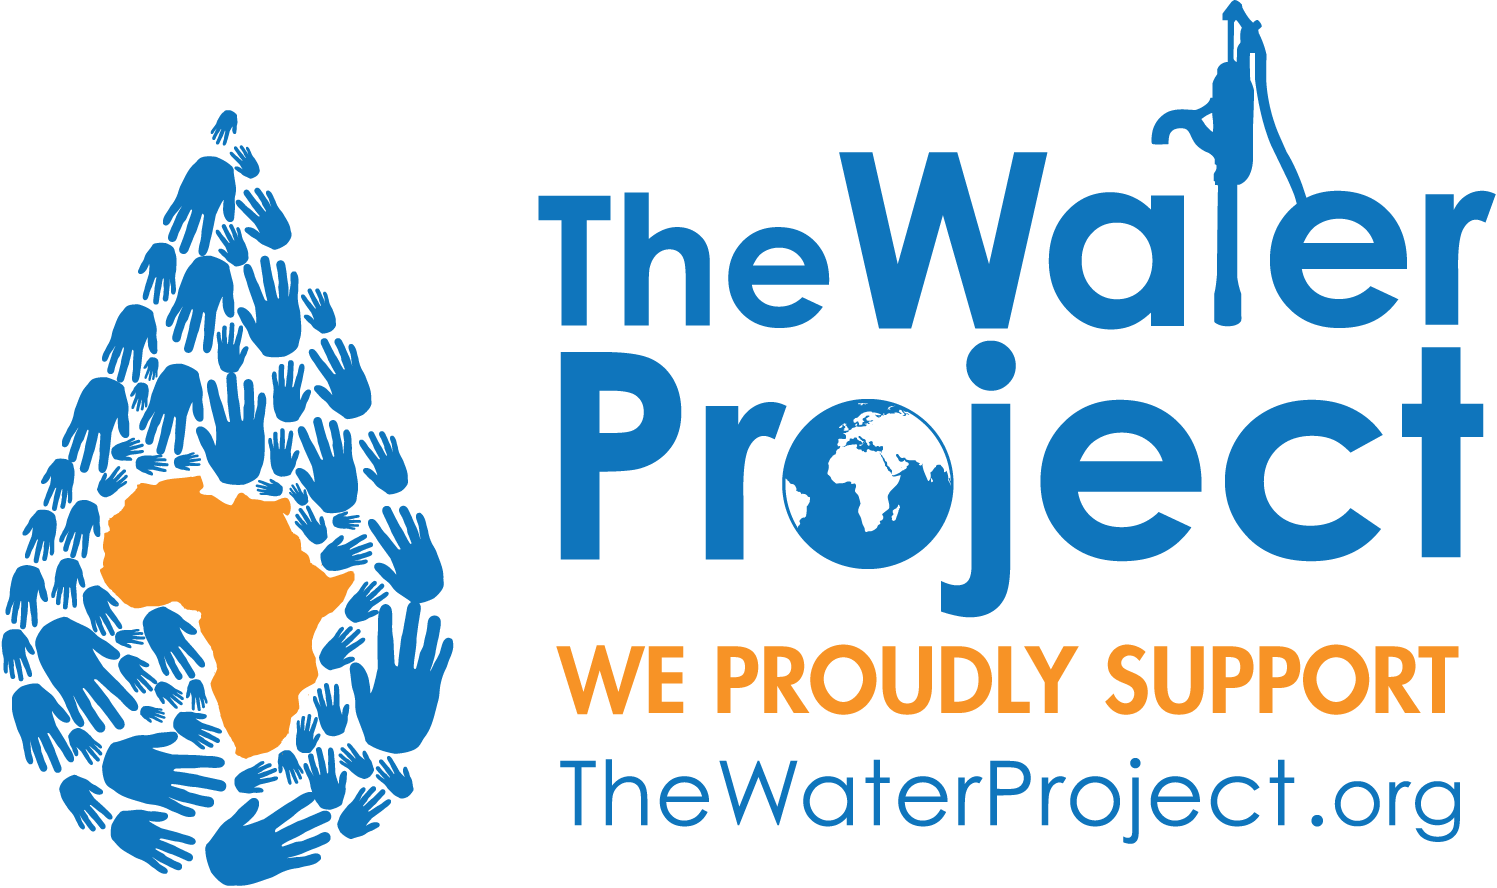 ecoimagine supports the water project